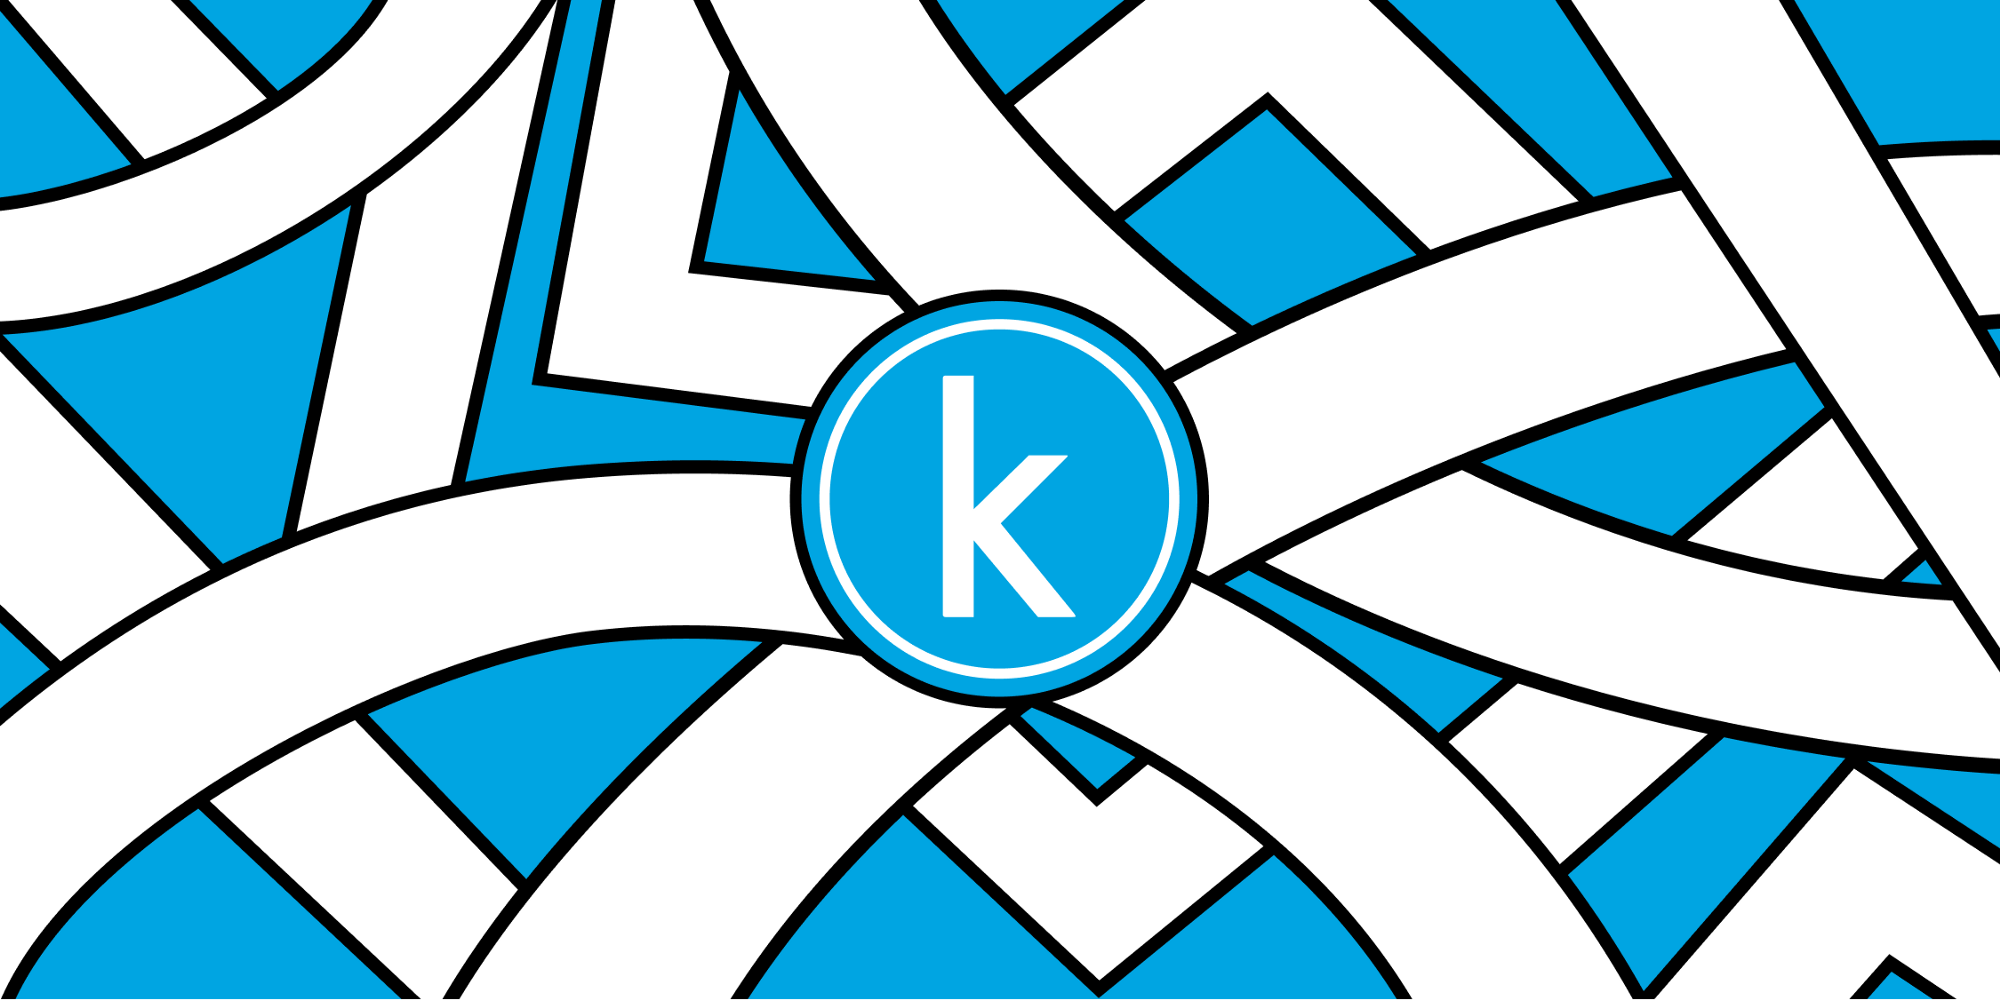 Cover image feature the Kindle Create logo on an abstract design created by the author.